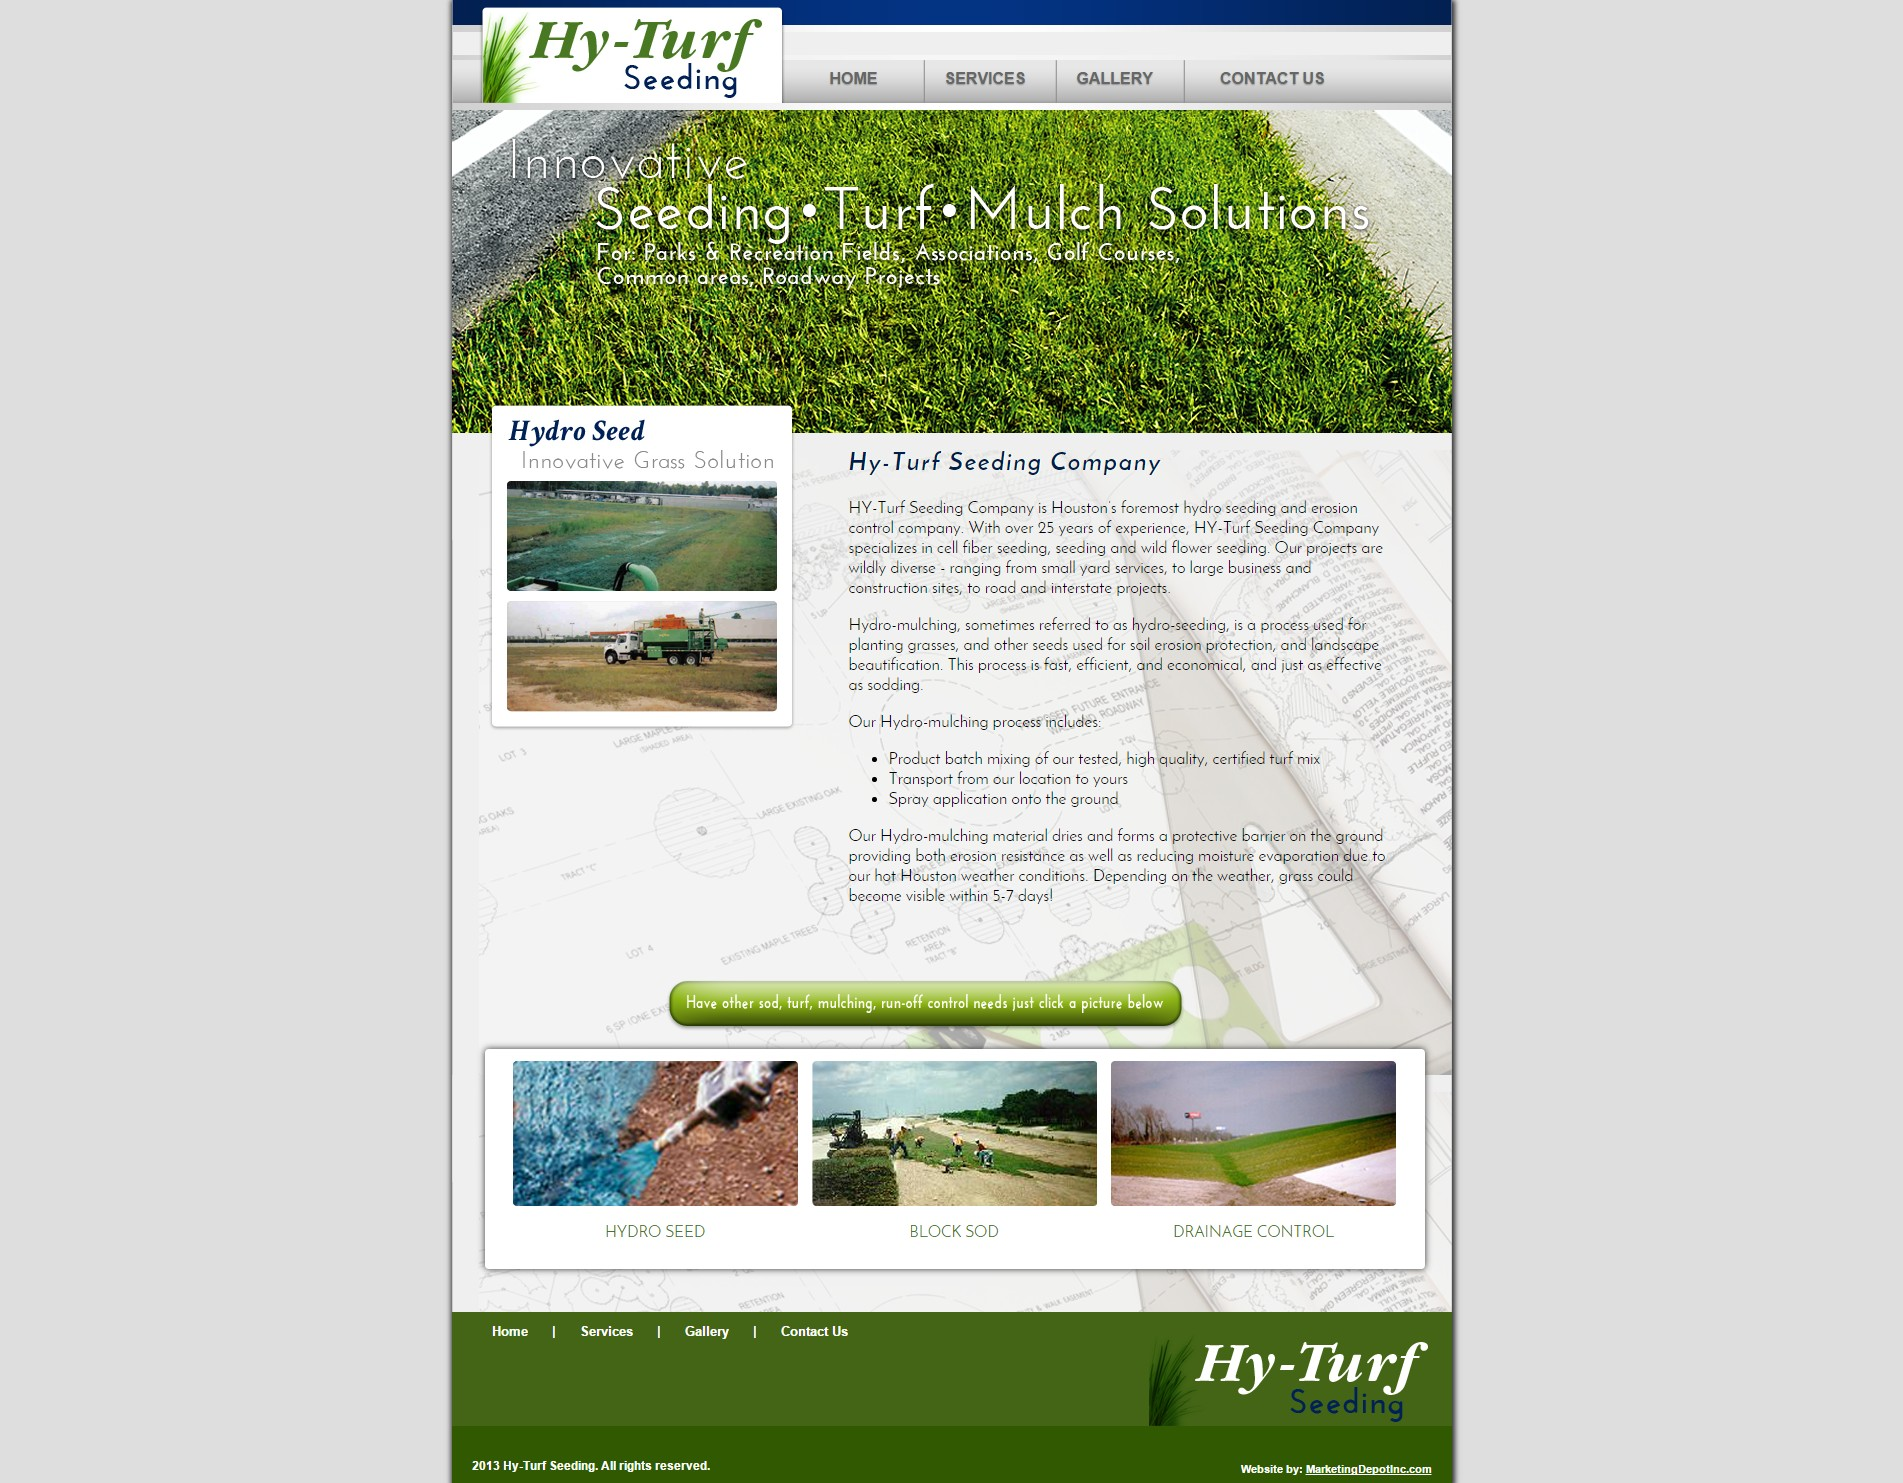 Hy-Turf Seeding